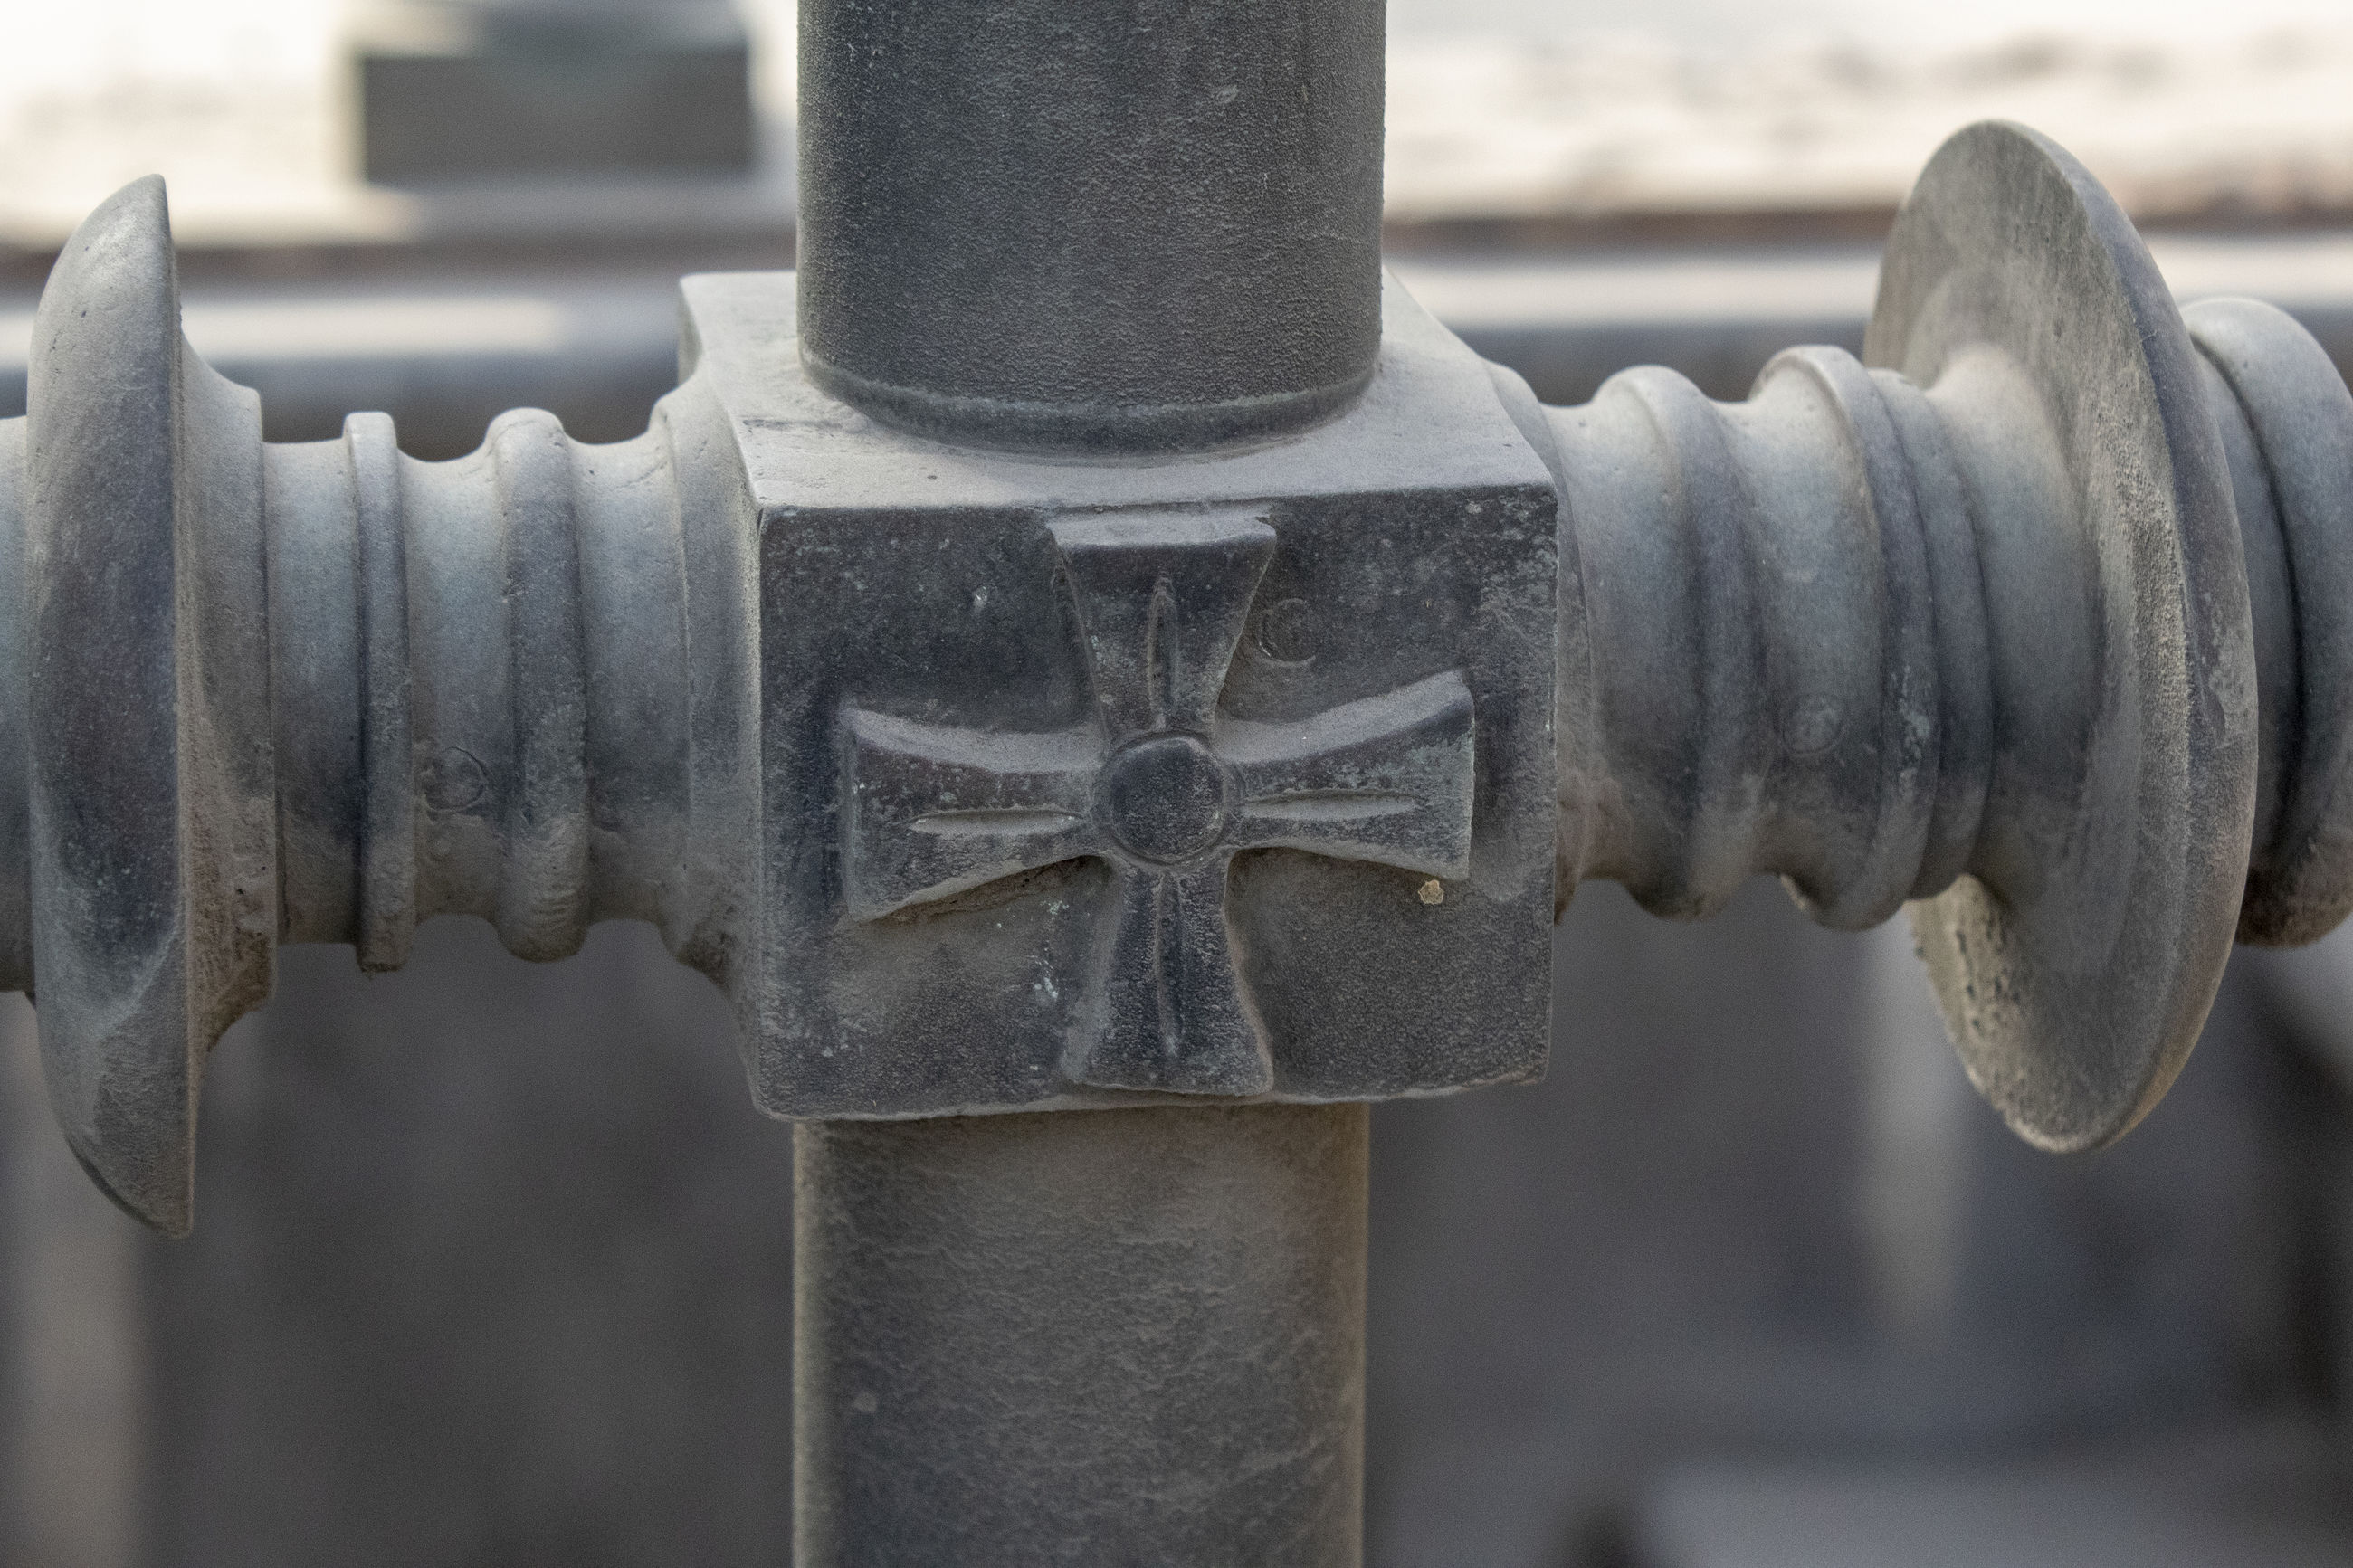 metal, close-up, no people, focus on foreground, day, cross, outdoors, pattern, architecture, old, design, cemetery, safety, security, protection, grave, shape, machinery, barrier, solid, machine valve